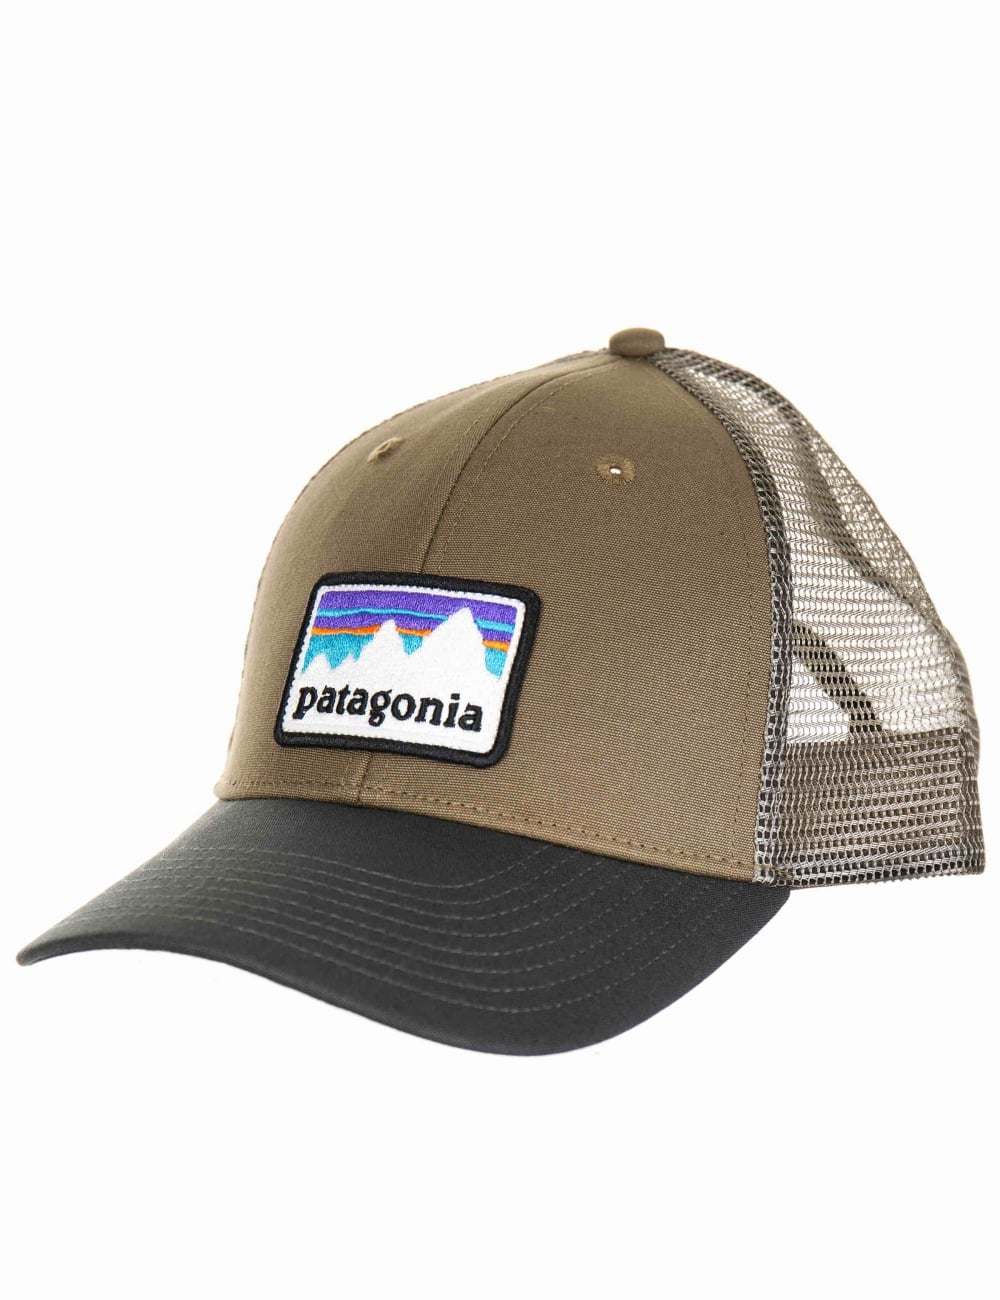 5b3a872ec45 Patagonia Shop Sticker Patch LoPro Trucker Hat - Dark Ash ...